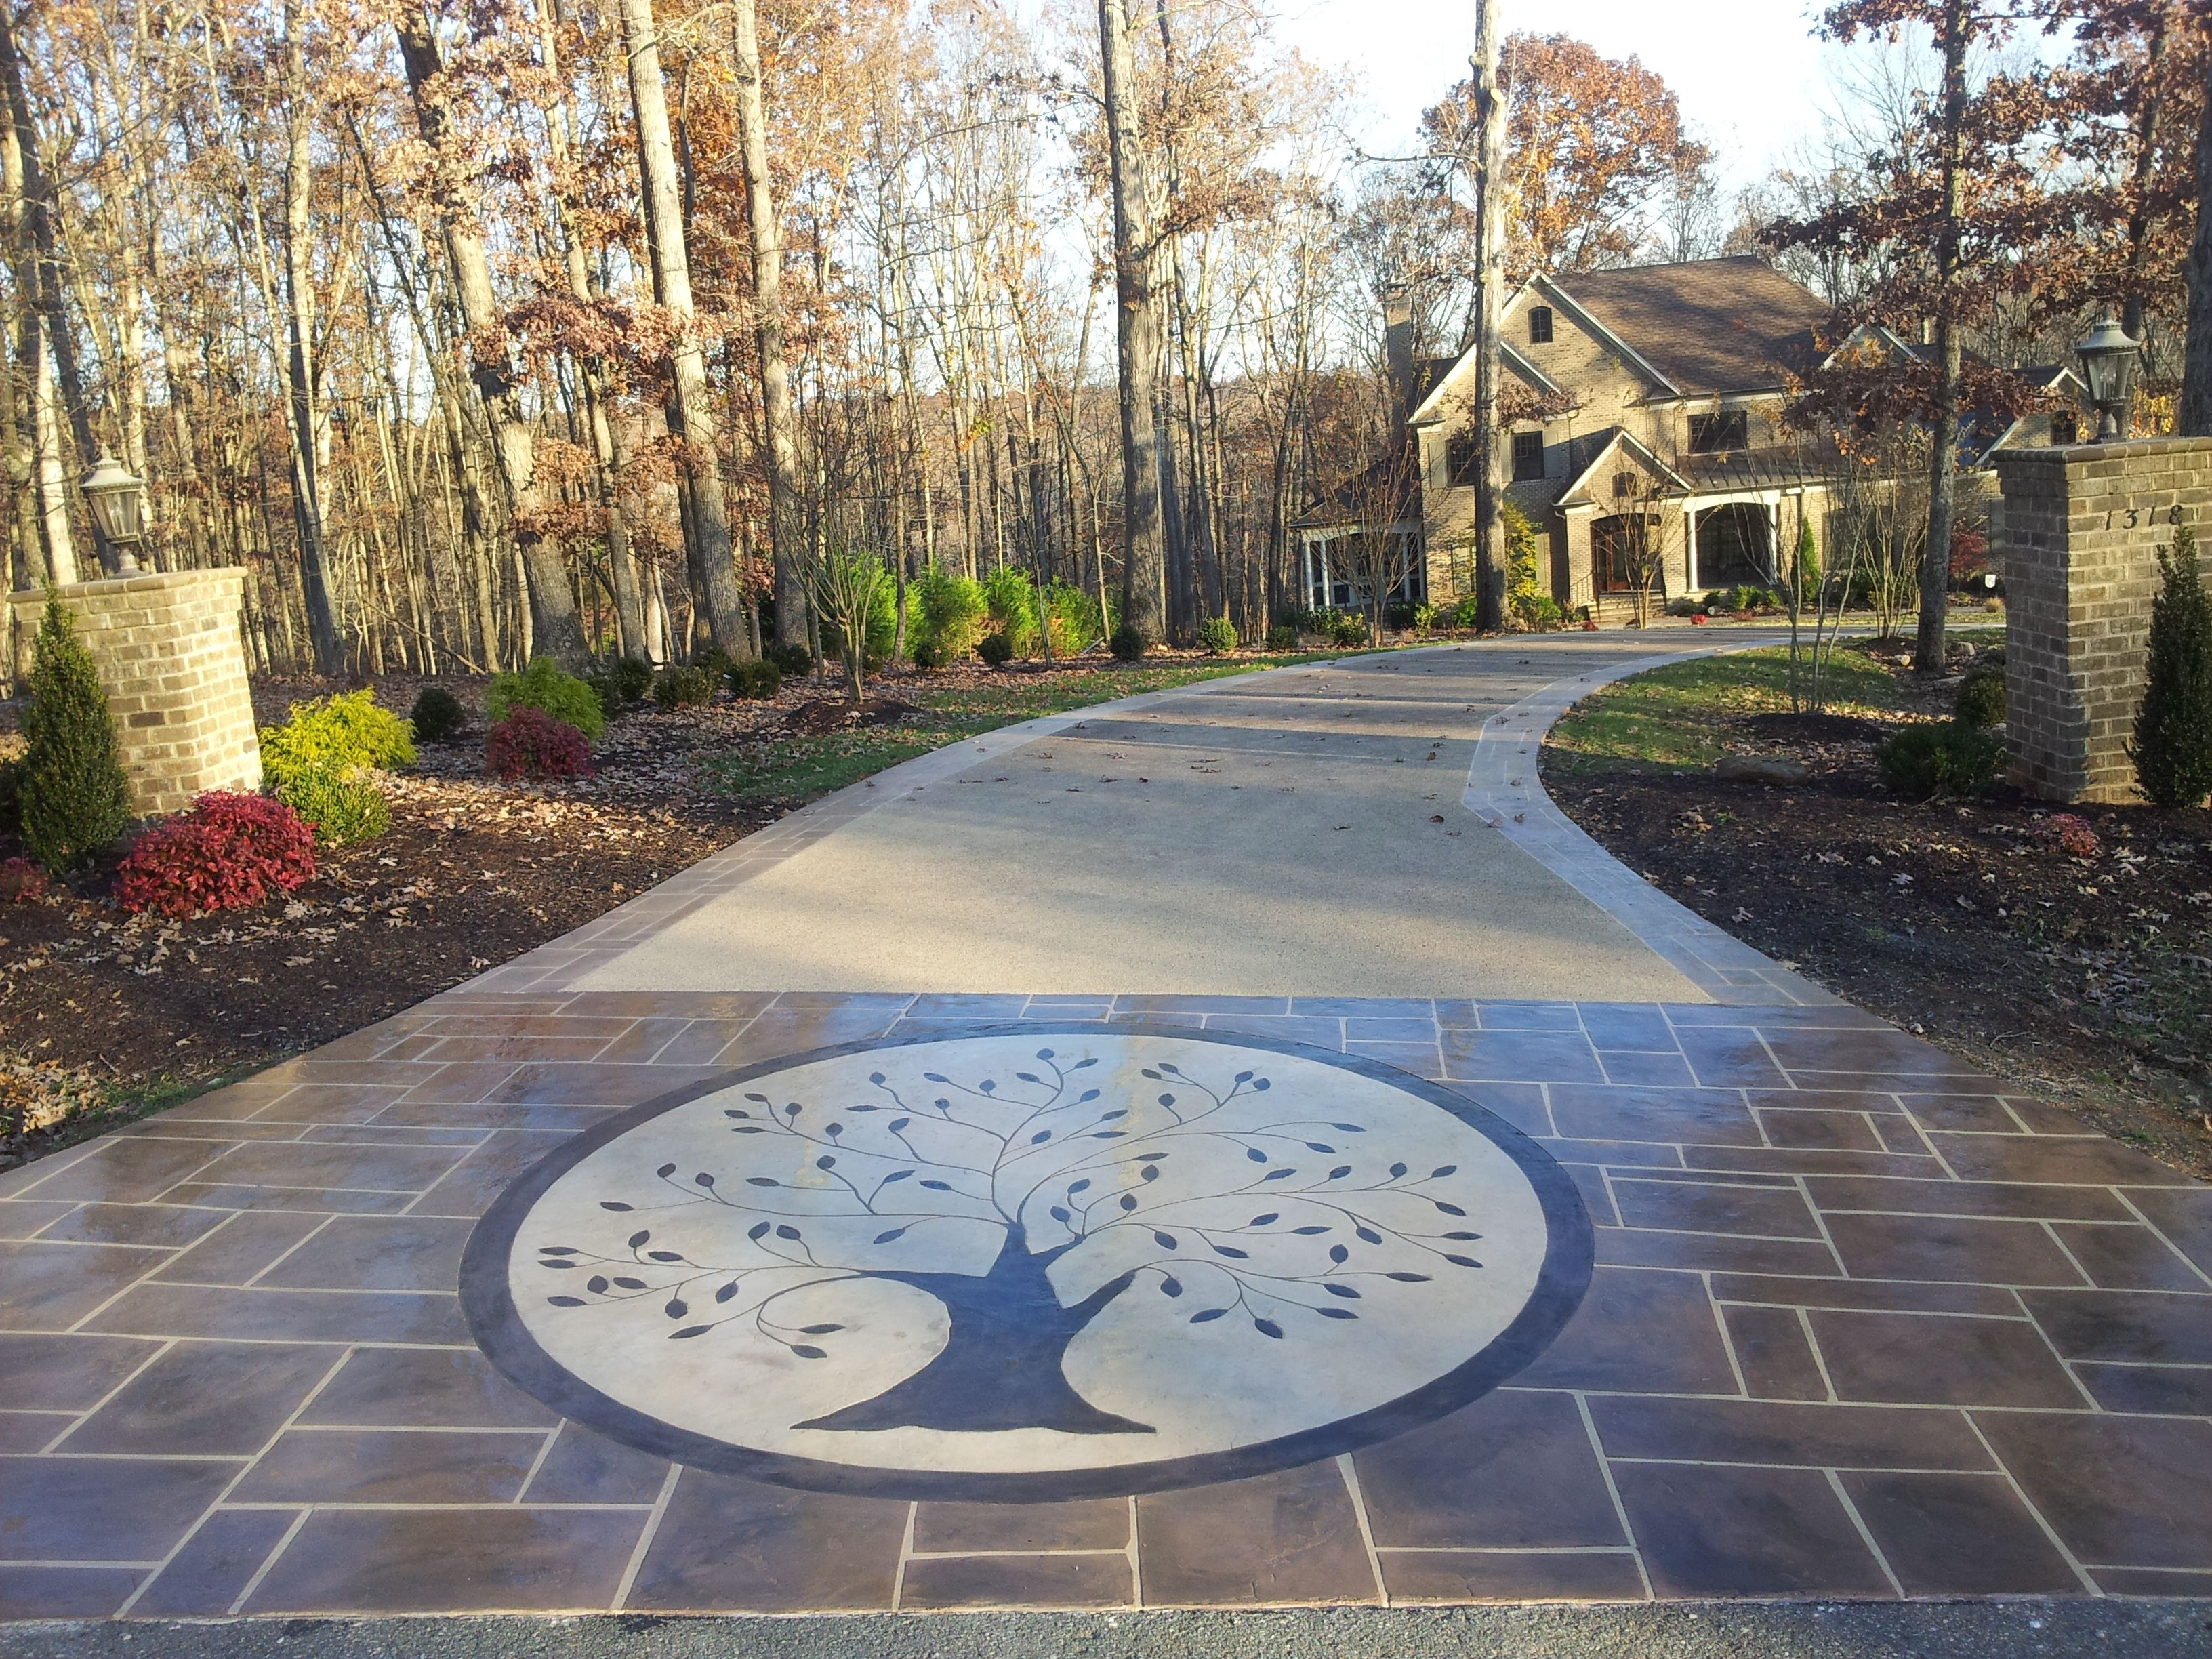 Decorative Concrete Driveway This Is A Driveway That Needed Function And A Facelift T Concrete Driveways Decorative Concrete Driveways Stamped Concrete Patio